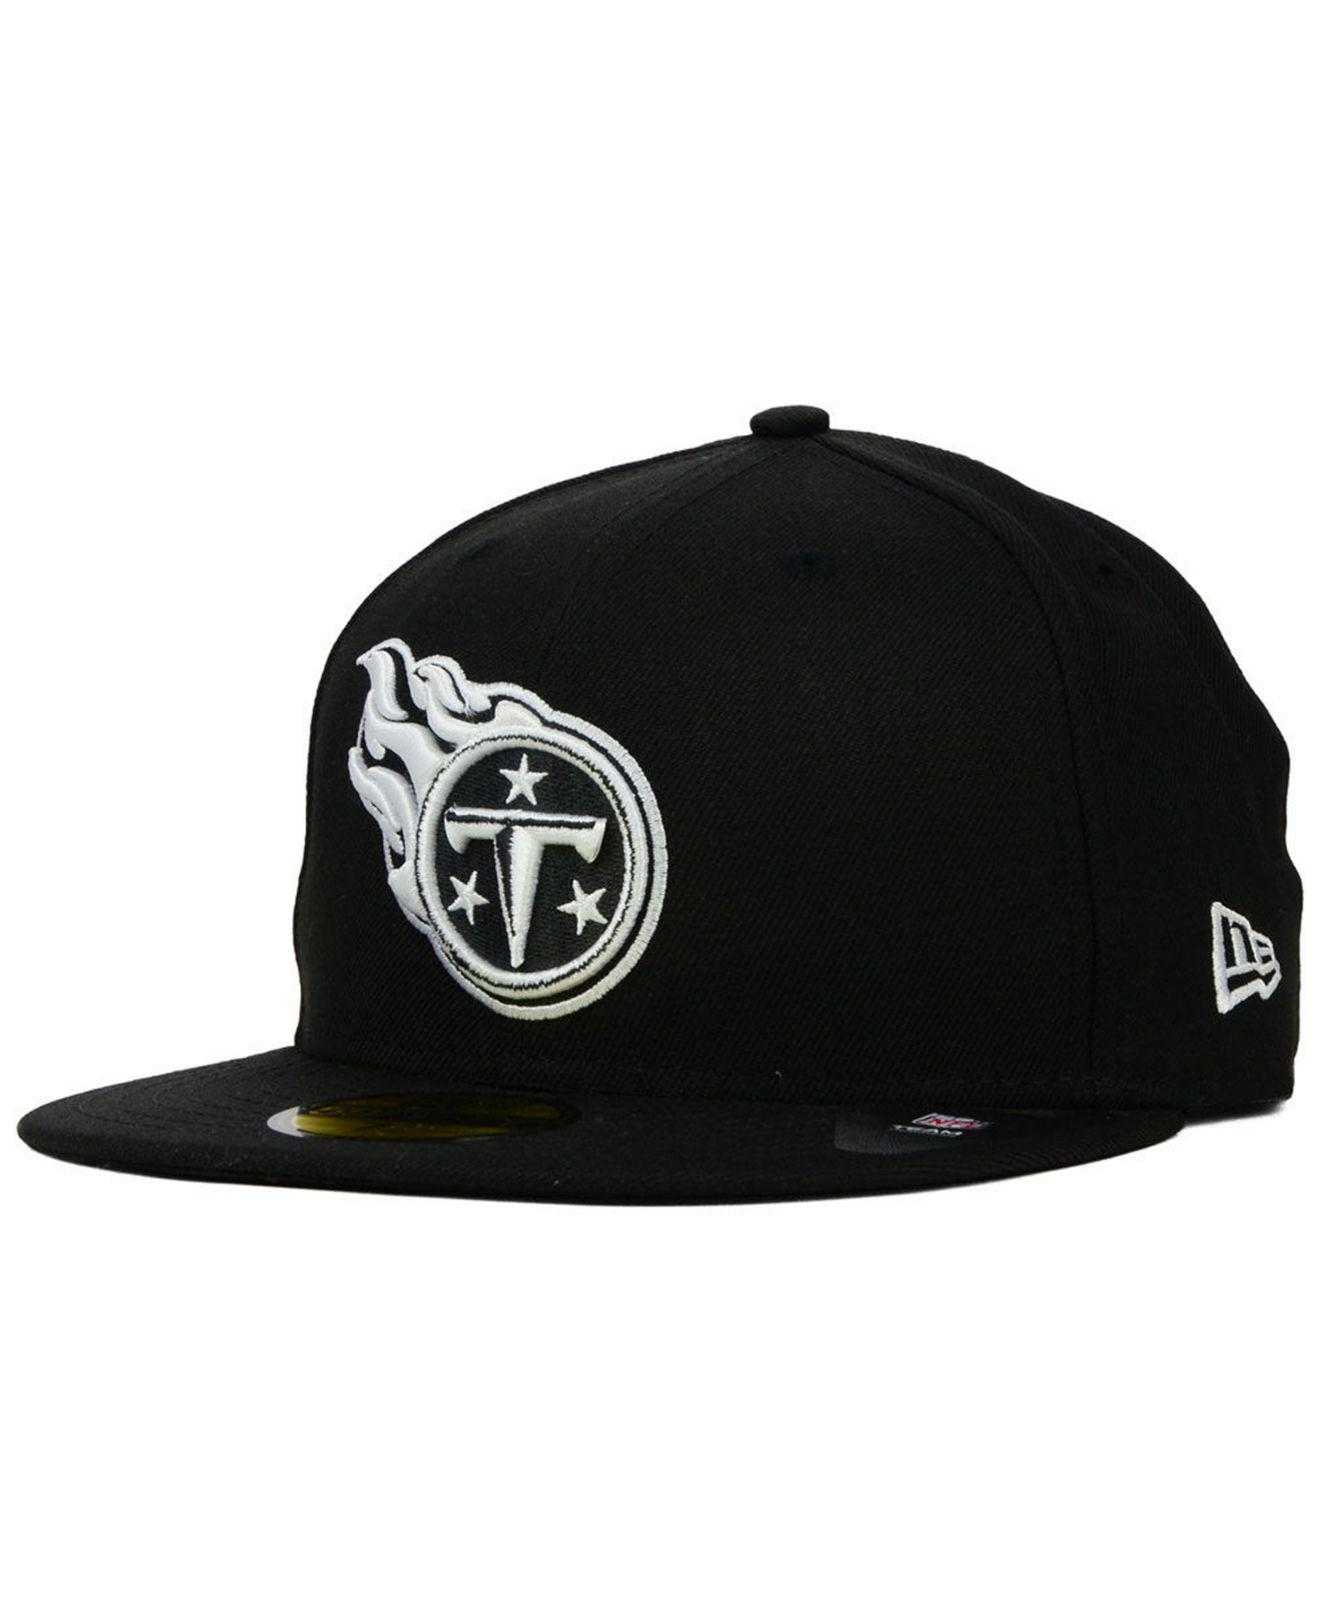 cf4289a69 discount code for black tennessee hat 2533f d6648